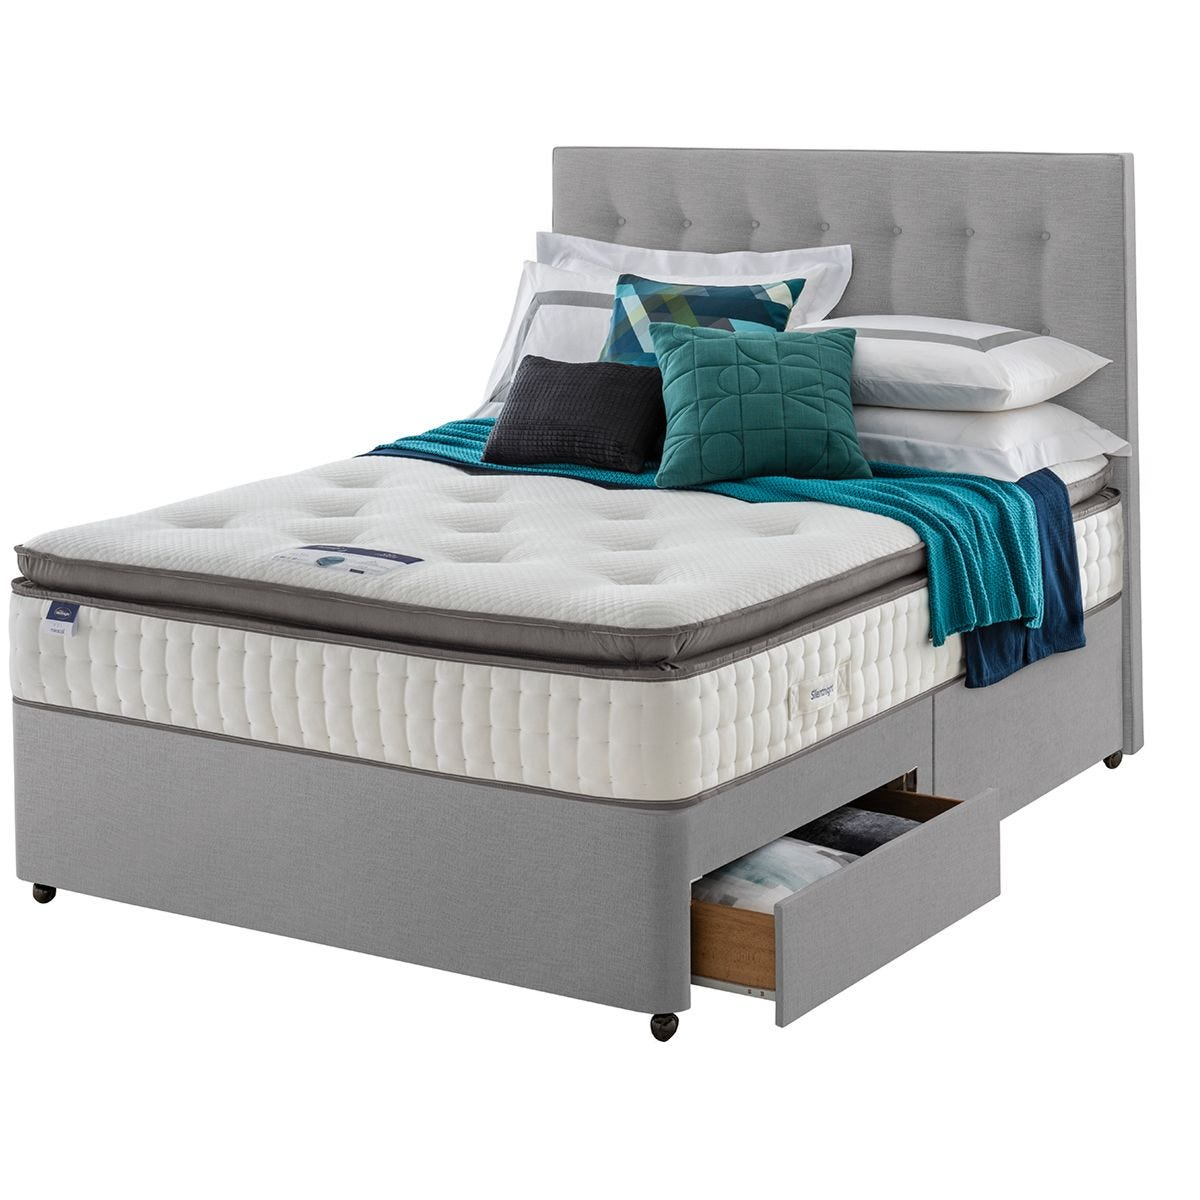 Silentnight Miracoil Geltex 2 Drawer Divan Bed - Grey